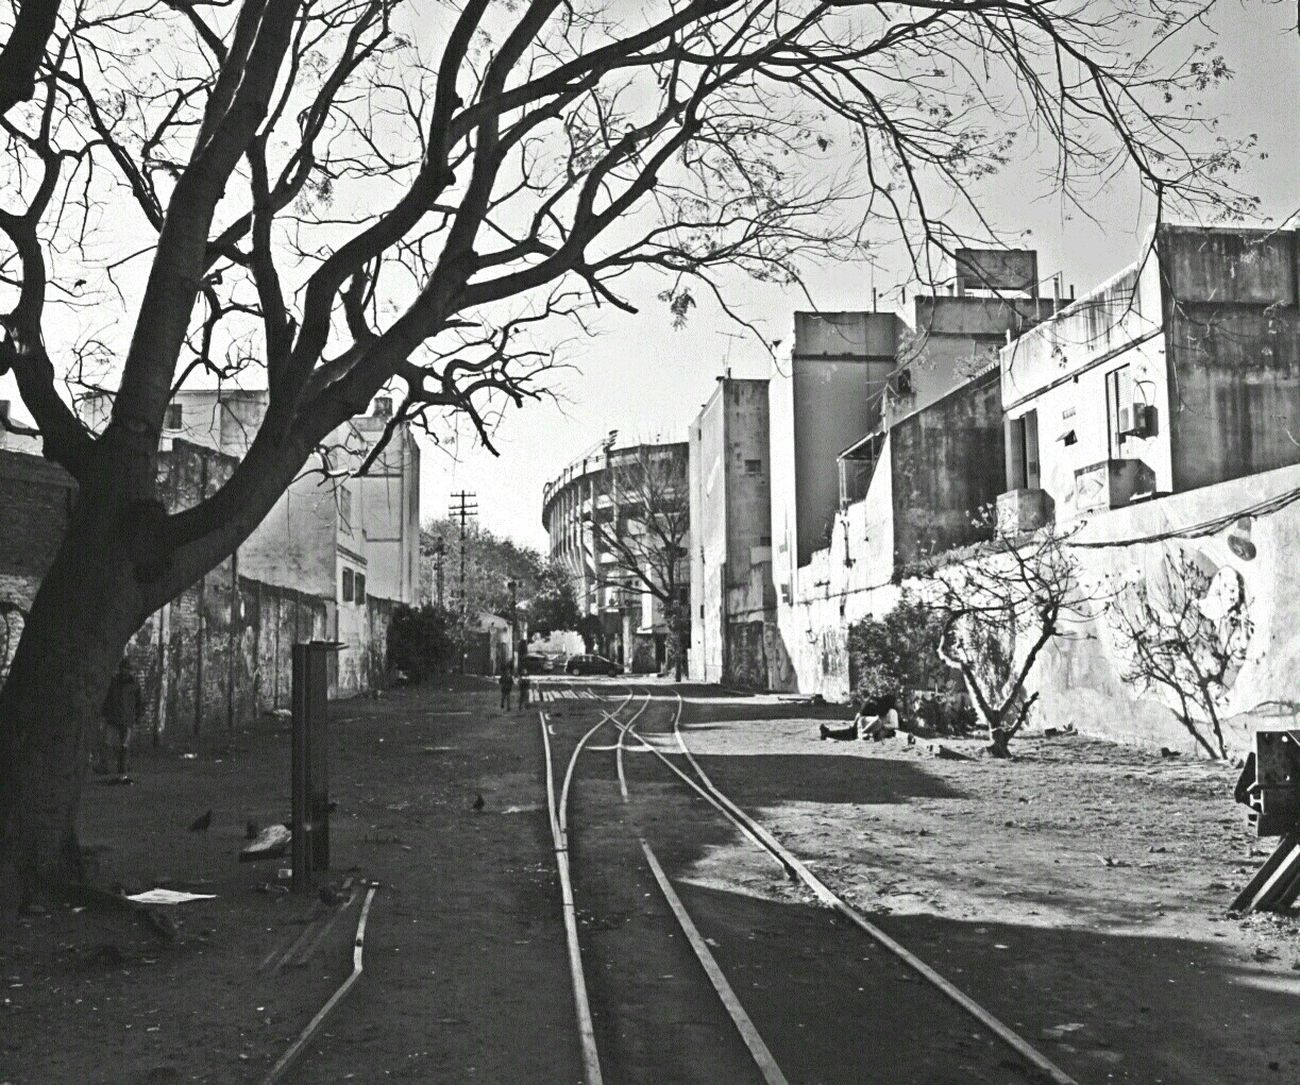 Argentina Photography El Caminito Argentina Silhouette Open Edit Travel Black & White Blackandwhite Photography EyeEm Best Shots - Black + White Traveling EyeEm Buenos Aires